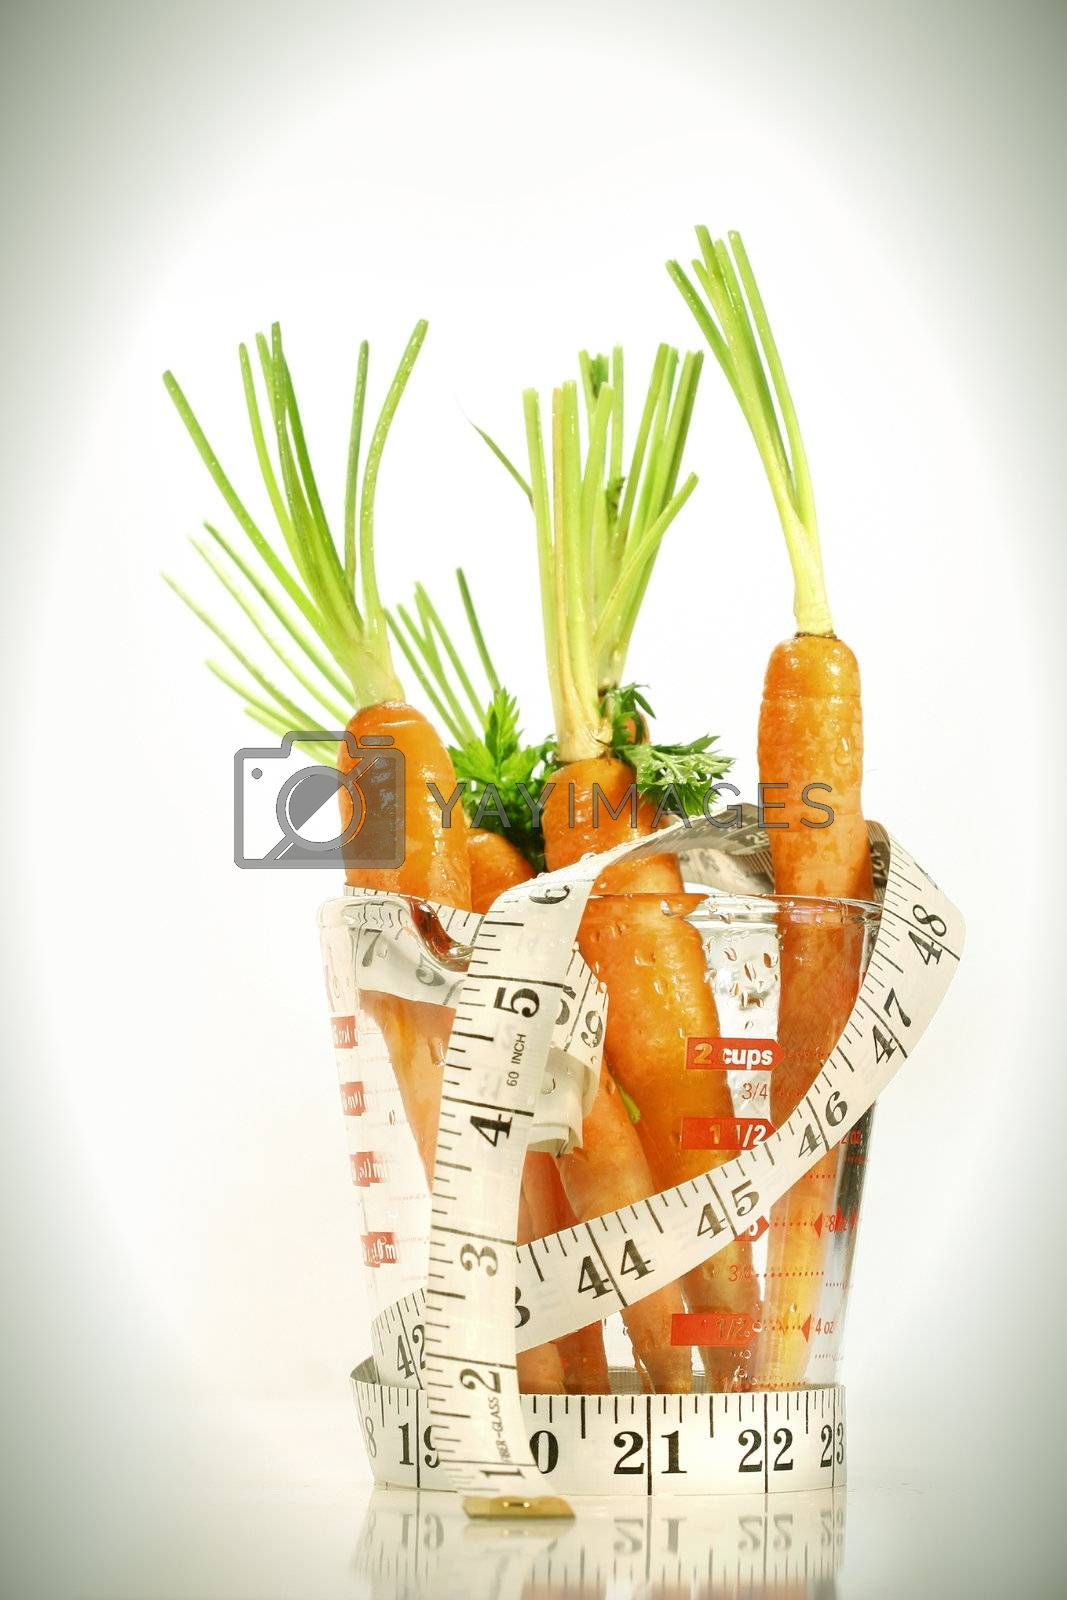 Carrots with water drops and a measuring tape wrapped around container